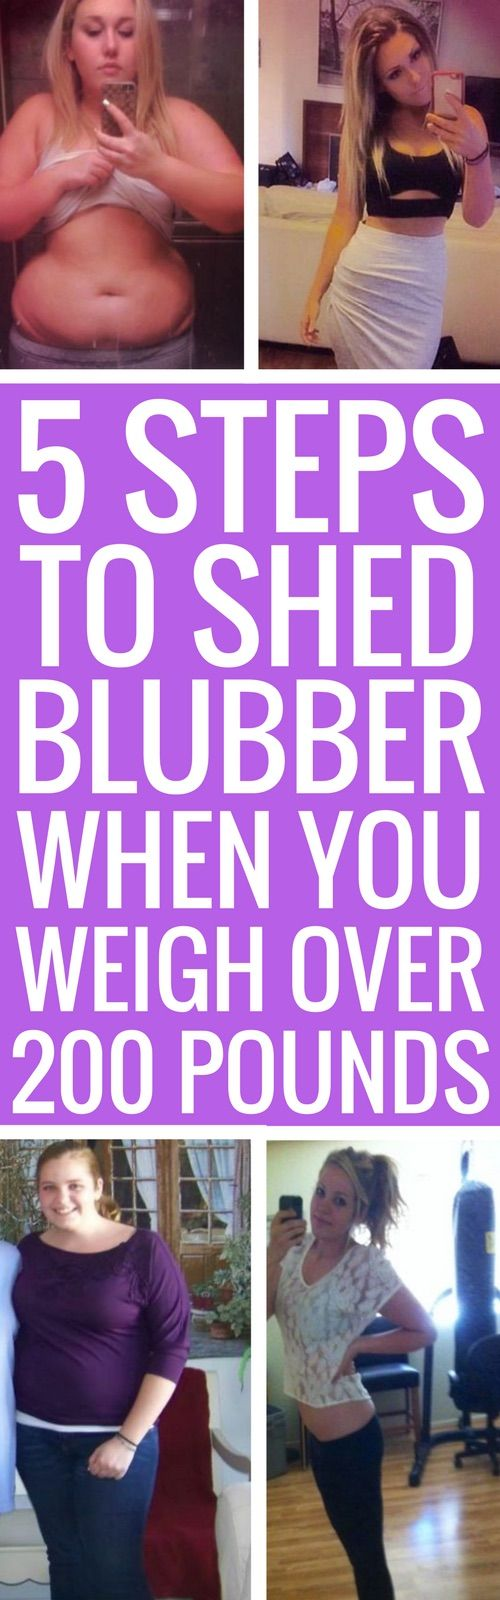 5 best steps to start losing weight when you weigh over 200 pounds. loose weight after baby